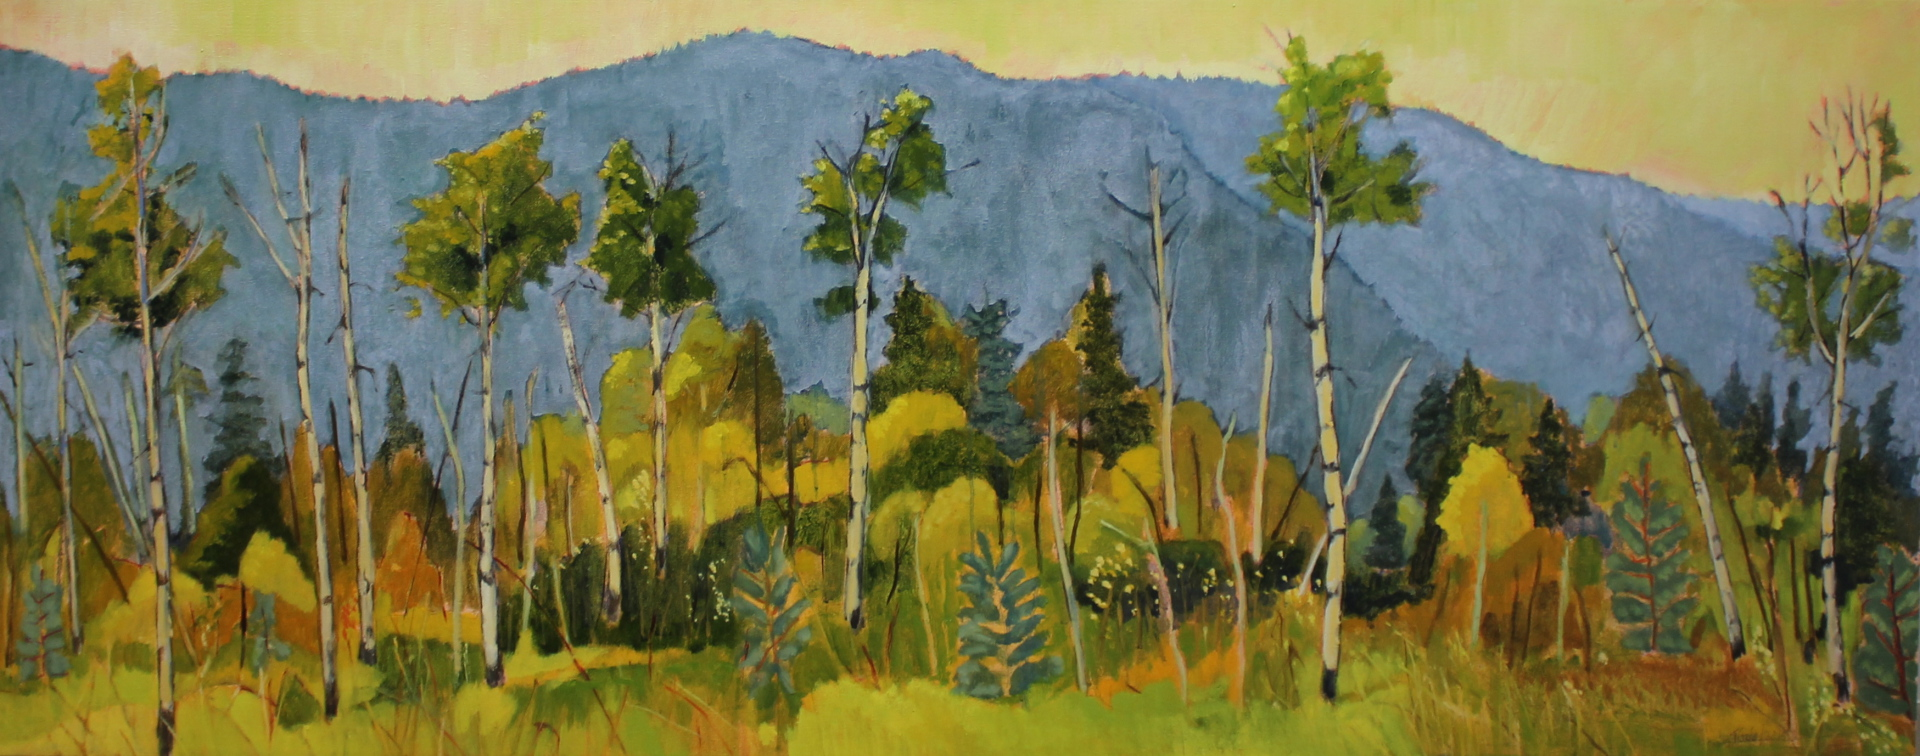 HOT SUMMER - 24X60 - OIL ON CANVAS - 2015